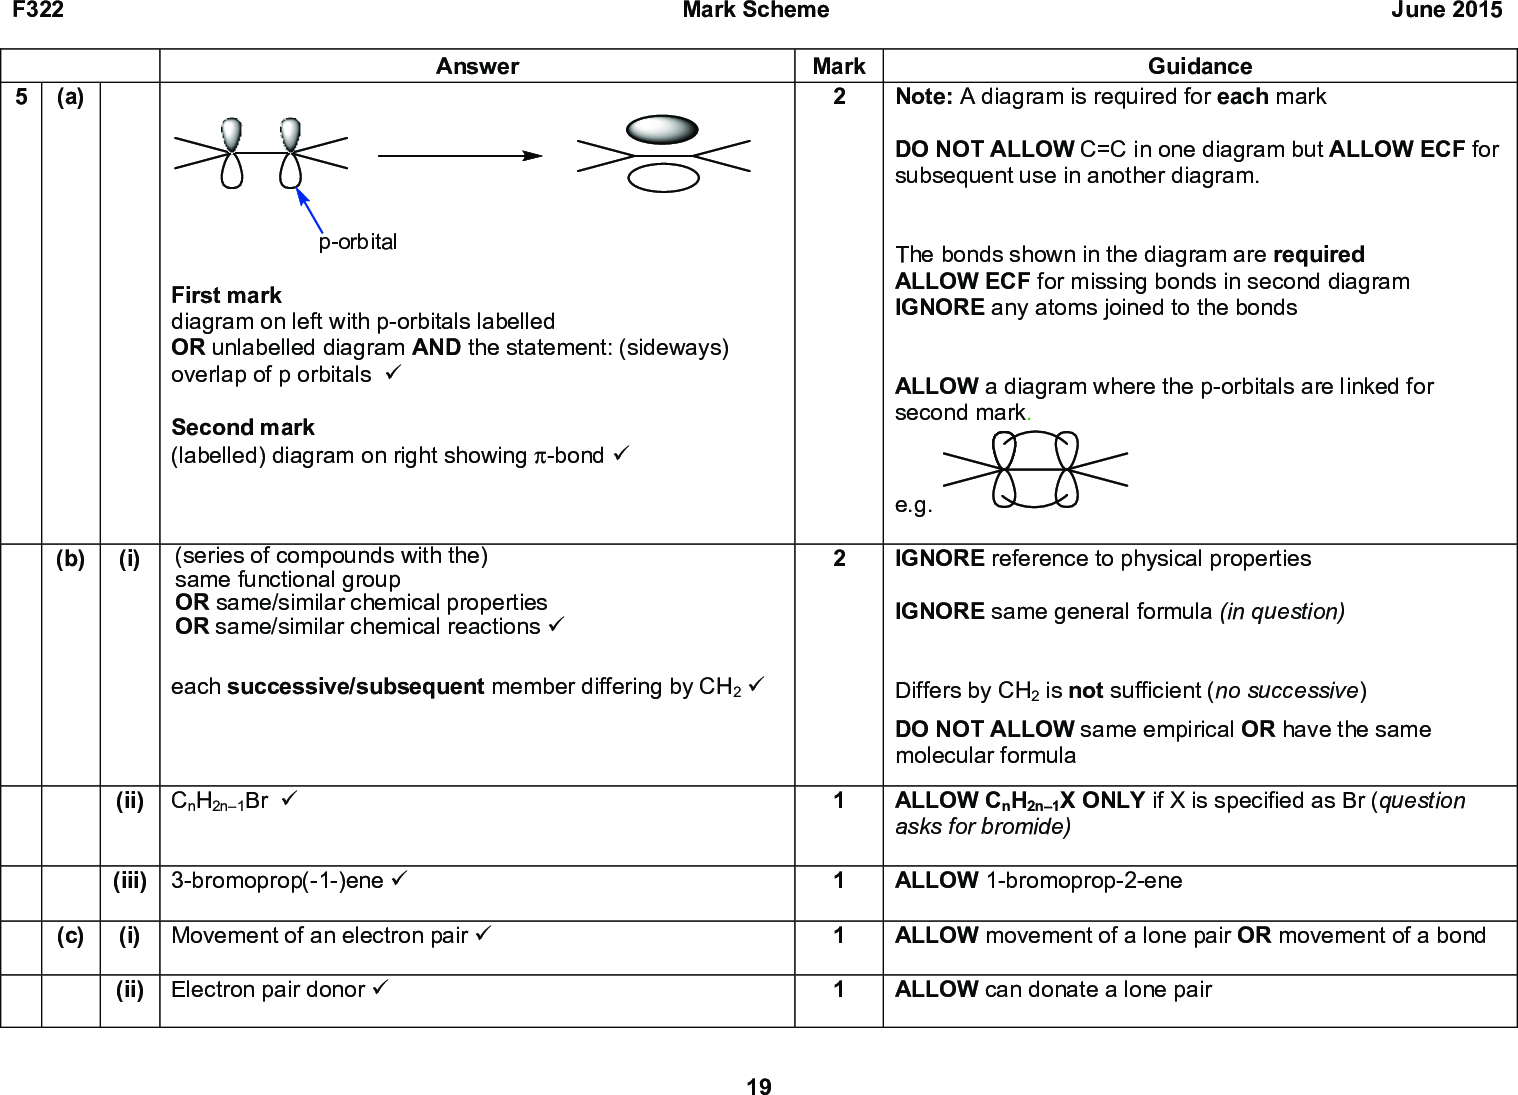 F322 (a) Answer Mark Scheme Mark porbital First mark diagram on left with porbitals labelled OR unlabelled diagram AND the statement: (sideways) overlap of p orbitals (cid:57)(cid:3) Second mark (labelled) diagram on right showing bond (cid:57)(cid:3) (b) (i) (series of compounds with the) same functional group OR same/similar chemical properties OR same/similar chemical reactions (cid:57)(cid:3) each successive/subsequent member differing by CH2 (cid:57)(cid:3) (c) (ii) CnH2n1Br (cid:57)(cid:3) (iii) 3bromoprop(1)ene (cid:57)(cid:3) (i) Movement of an electron pair (cid:57)(cid:3) (ii) Electron pair donor (cid:57)(cid:3) June 2015 Guidance Note: A diagram is required for each mark DO NOT ALLOW C=C in one diagram but ALLOW ECF for subsequent use in another diagram. The bonds shown in the diagram are required ALLOW ECF for missing bonds in second diagram IGNORE any atoms joined to the bonds ALLOW a diagram where the porbitals are linked for second mark. e.g. IGNORE reference to physical properties IGNORE same general formula (in question) Differs by CH2 is not sufficient (no successive) DO NOT ALLOW same empirical OR have the same molecular formula ALLOW CnH2n1X ONLY if X is specified as Br (question asks for bromide) ALLOW 1bromoprop2ene ALLOW movement of a lone pair OR movement of a bond ALLOW can donate a lone pair 19<br />  F322 (d) (i) Answer H2C +Br Mark Scheme Mark OH curly arrow from HO to carbon atom of C(cid:237)Br bond (cid:57)(cid:3) Dipole shown on CBr bond, C(cid:303)+ and Br(cid:303)(cid:237) , AND curly arrow from C(cid:237)Br bond to Br atom (cid:57)(cid:3)H2C CH2OH Br correct organic product AND Br (cid:57)(cid:3) (ii) Nucleophilic substitution (cid:57)(cid:3) 20 June 2015 Guidance ANNOTATE ANSWER WITH TICKS AND CROSSES ETC Curly arrow must come from lone pair on O of HO OR OH OR from minus sign on HO ion (No need to show lone pair if curly arrow came from negative charge on O)ALLOW SN1 mechanism: Dipole shown on CBr bond, C(cid:303)+ and Br(cid:303